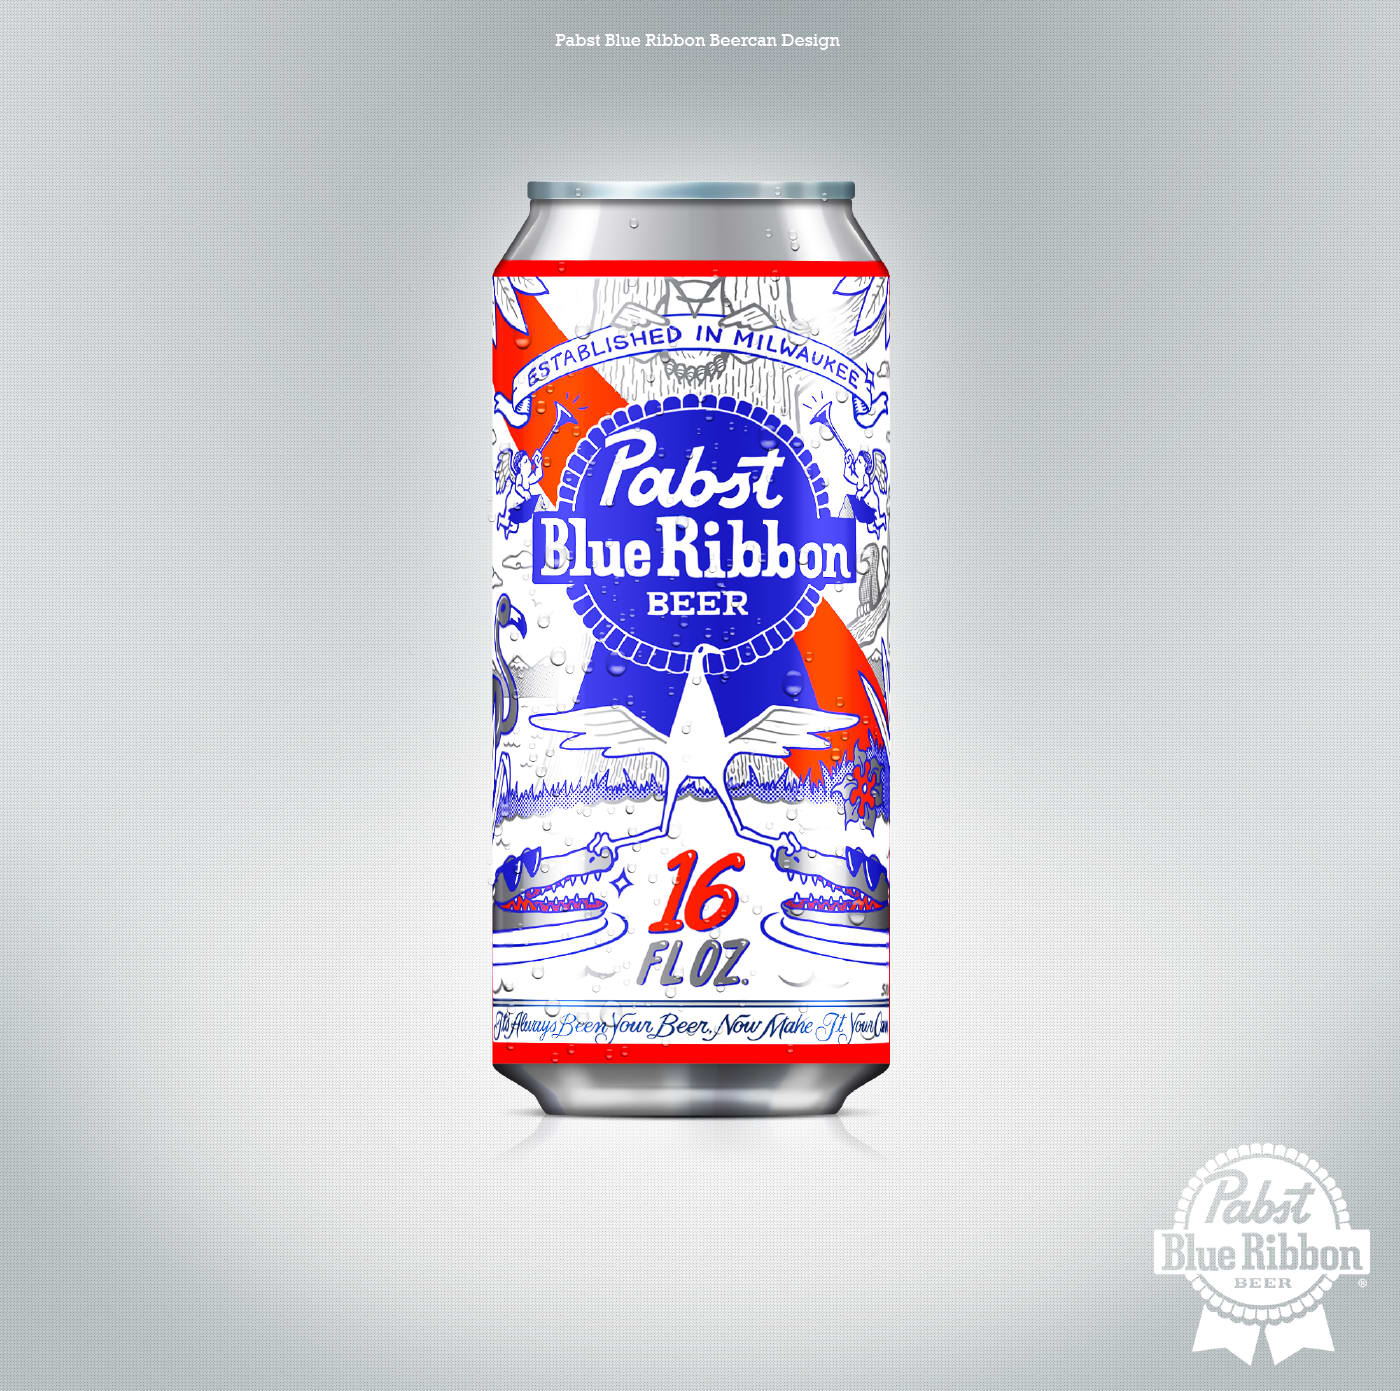 Pabst Blue RIbbon Beercan Design